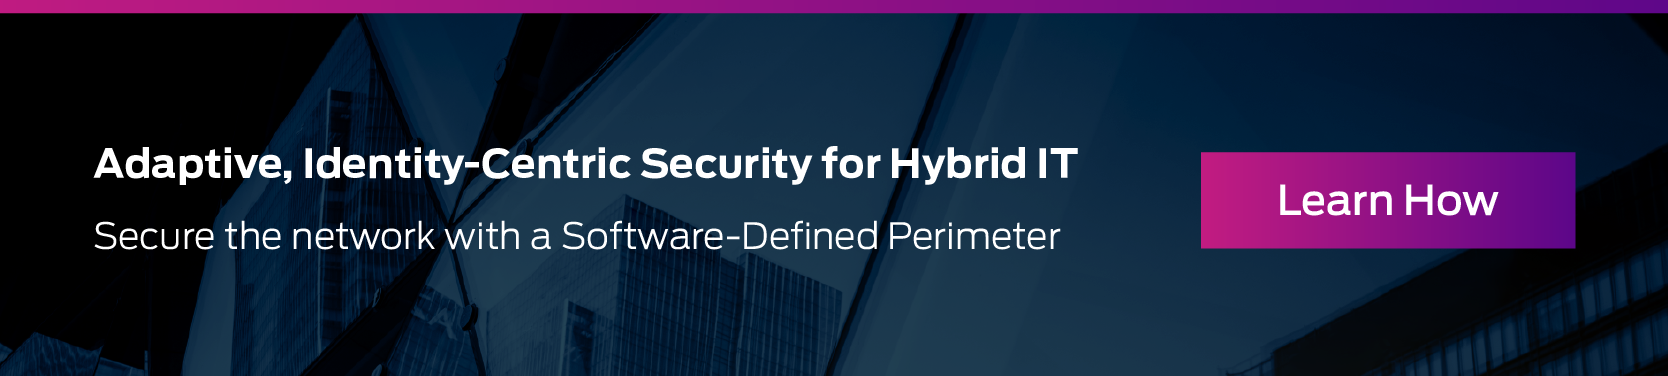 Adaptive, Identity-Centric Security for Hybrid IT